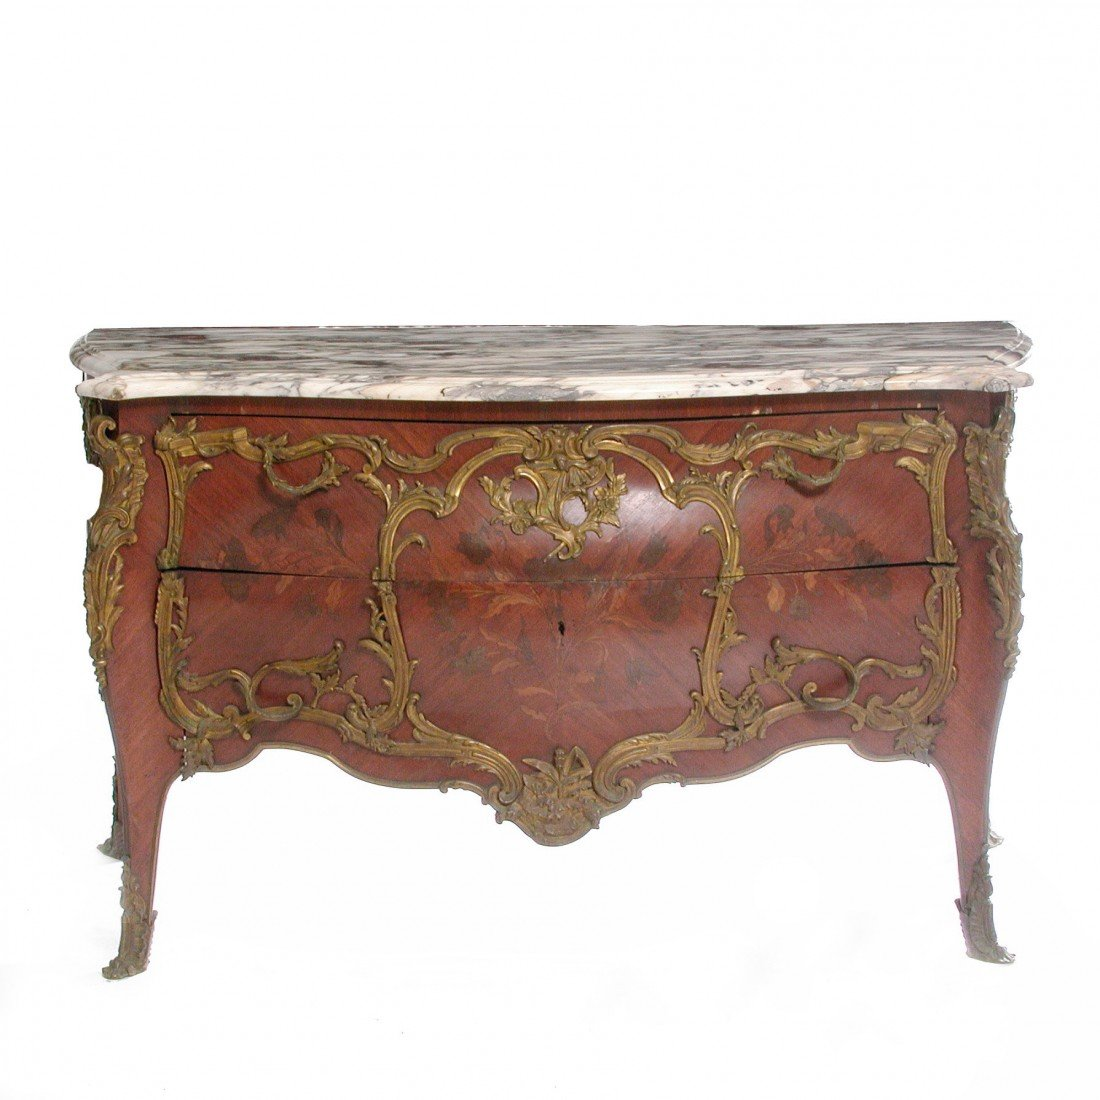 469: Louis XV Commode, Attrib Francois Linke, 19th c.